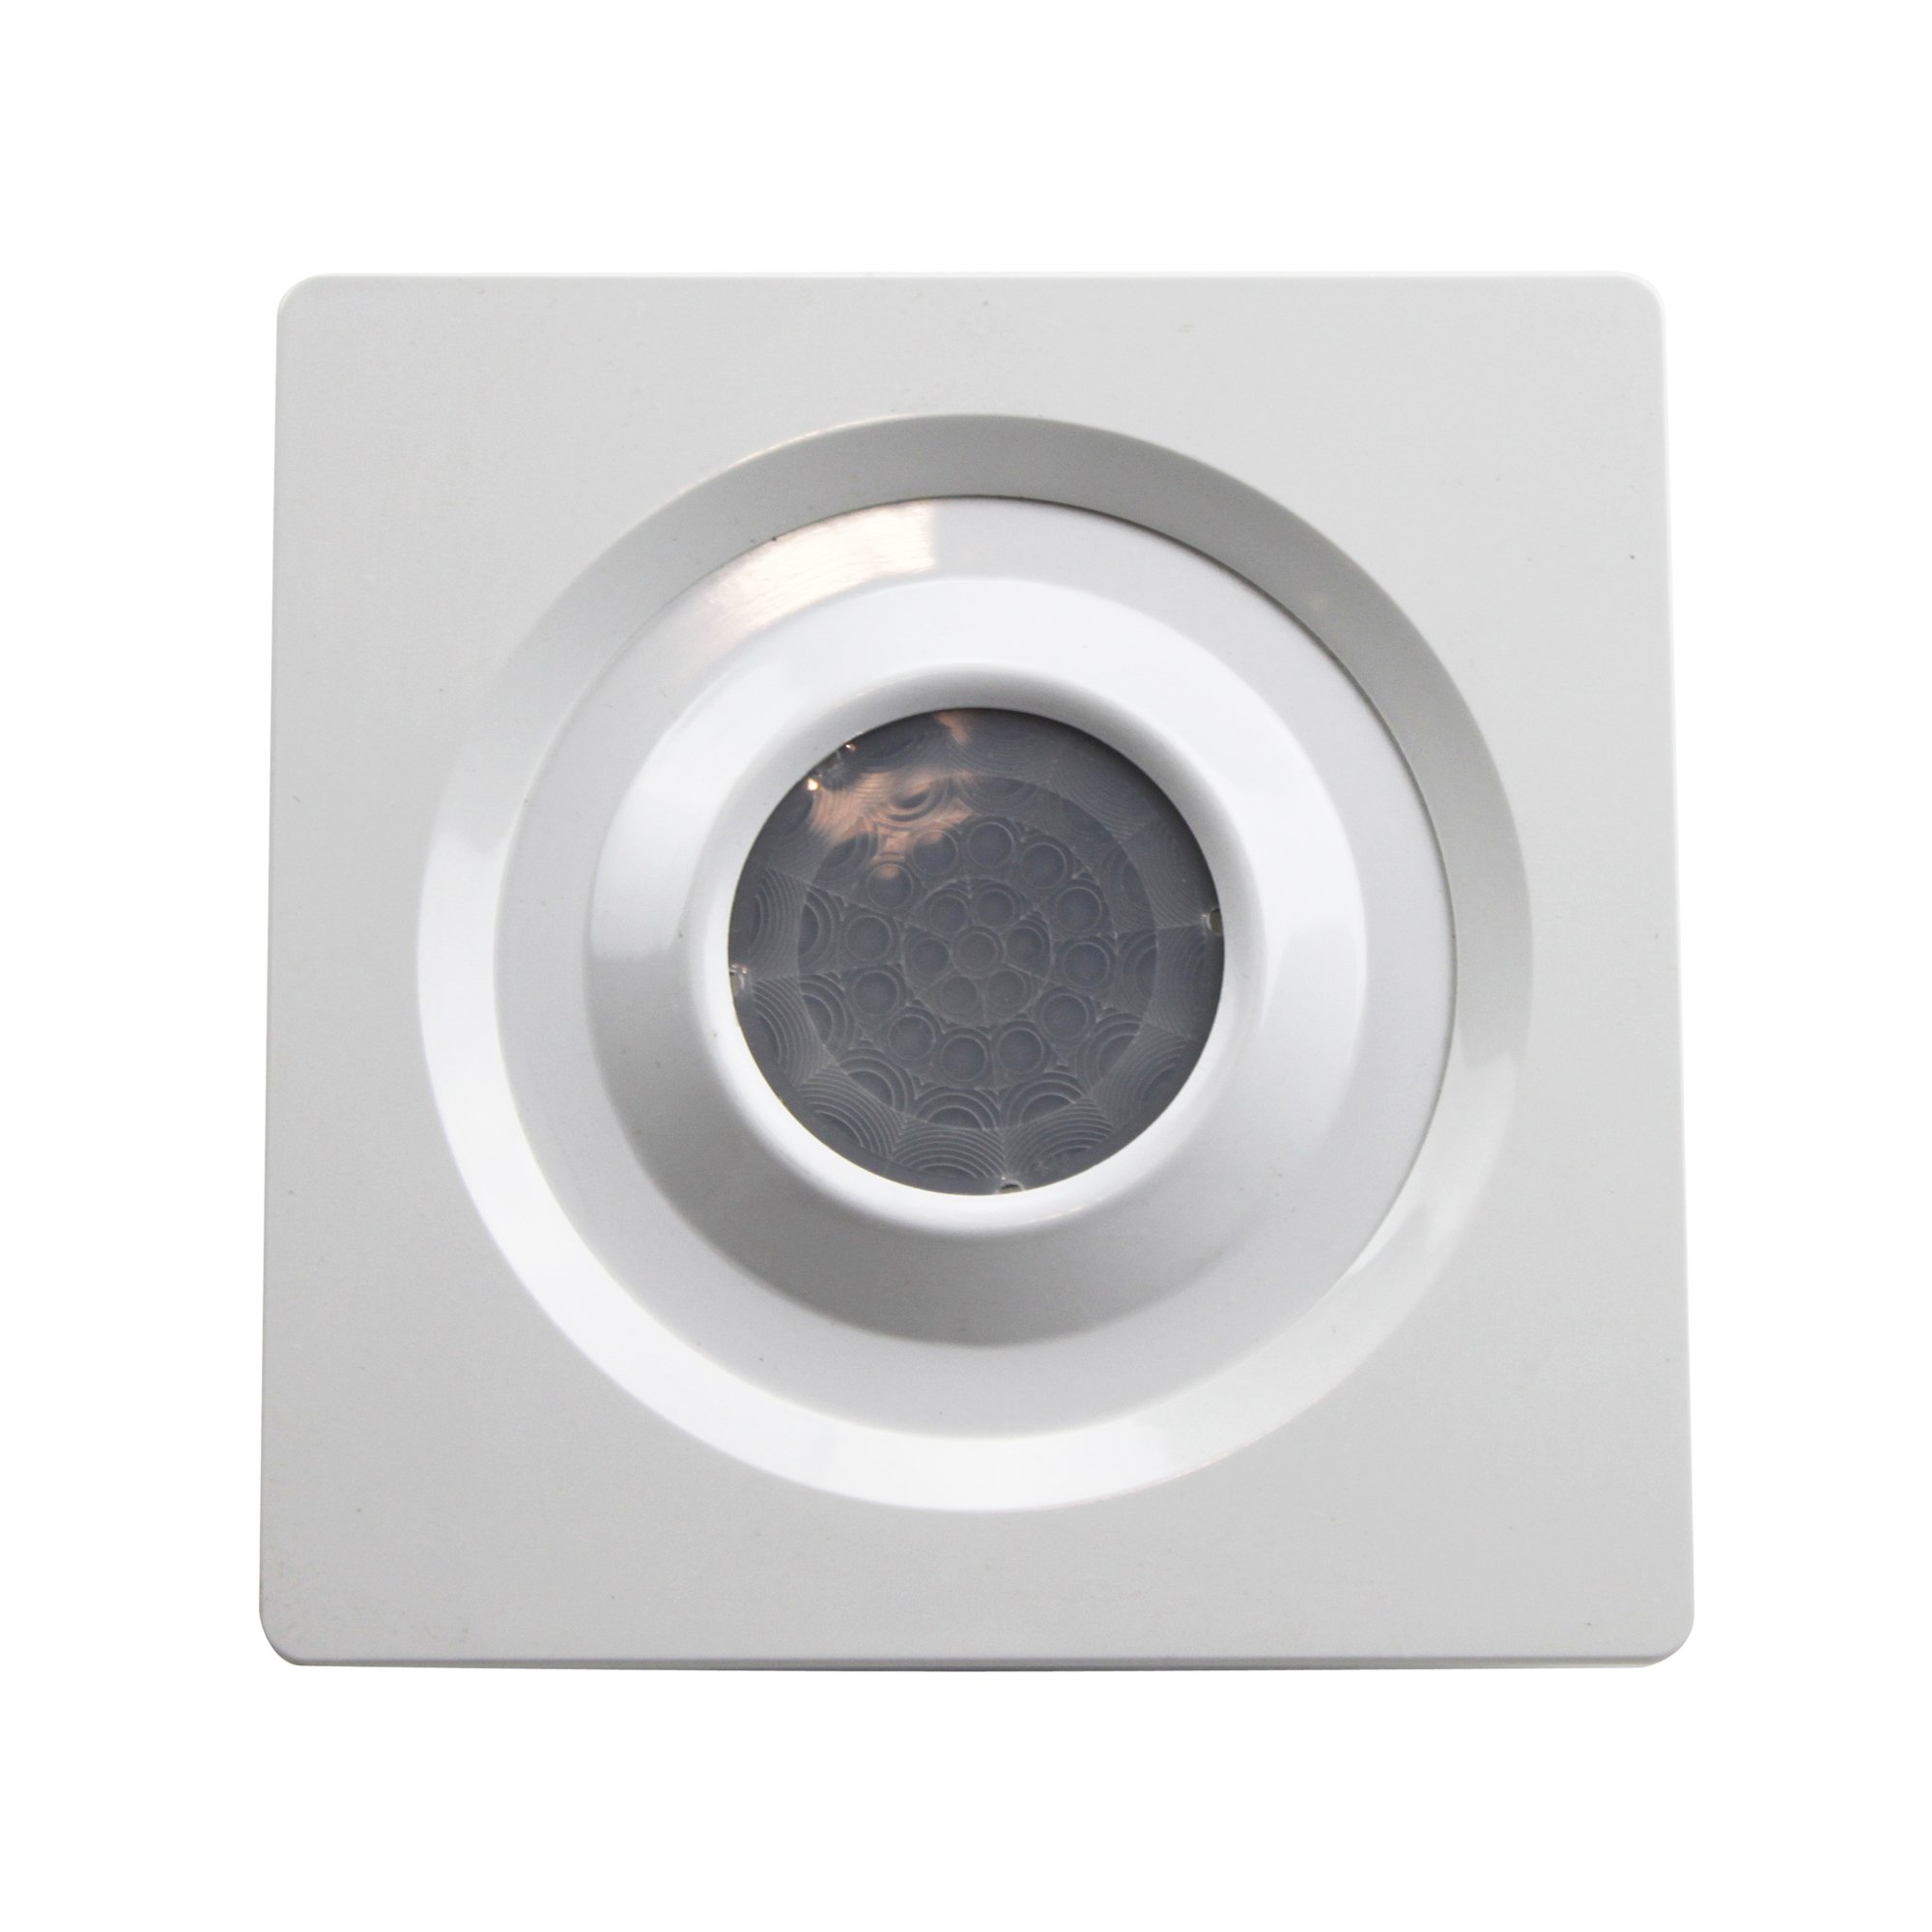 Sensor Switch Lithonia Rm-6 High Bay 360° Sensor Recessed Mount, Low Voltage, Passive Infrared (Pir)